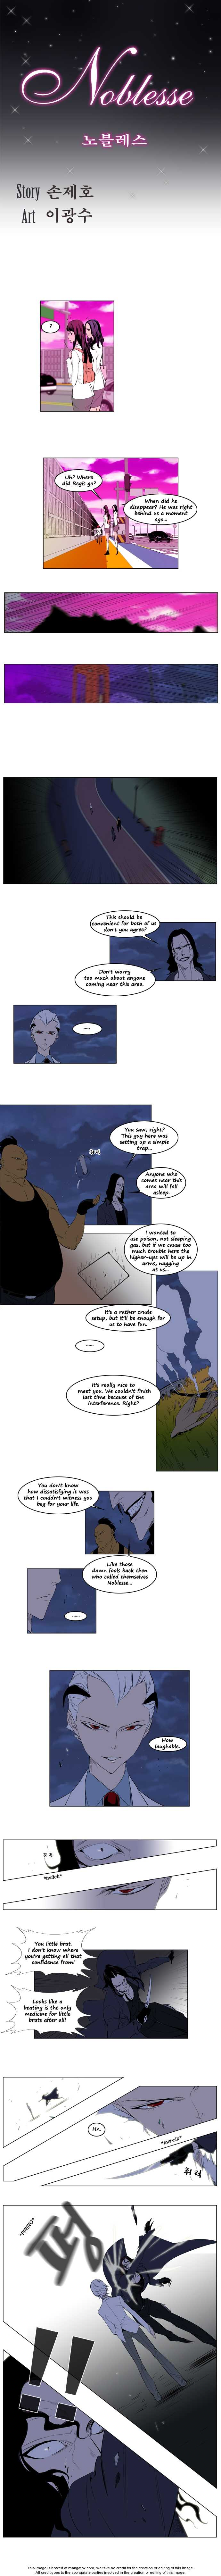 Noblesse 121 Page 1